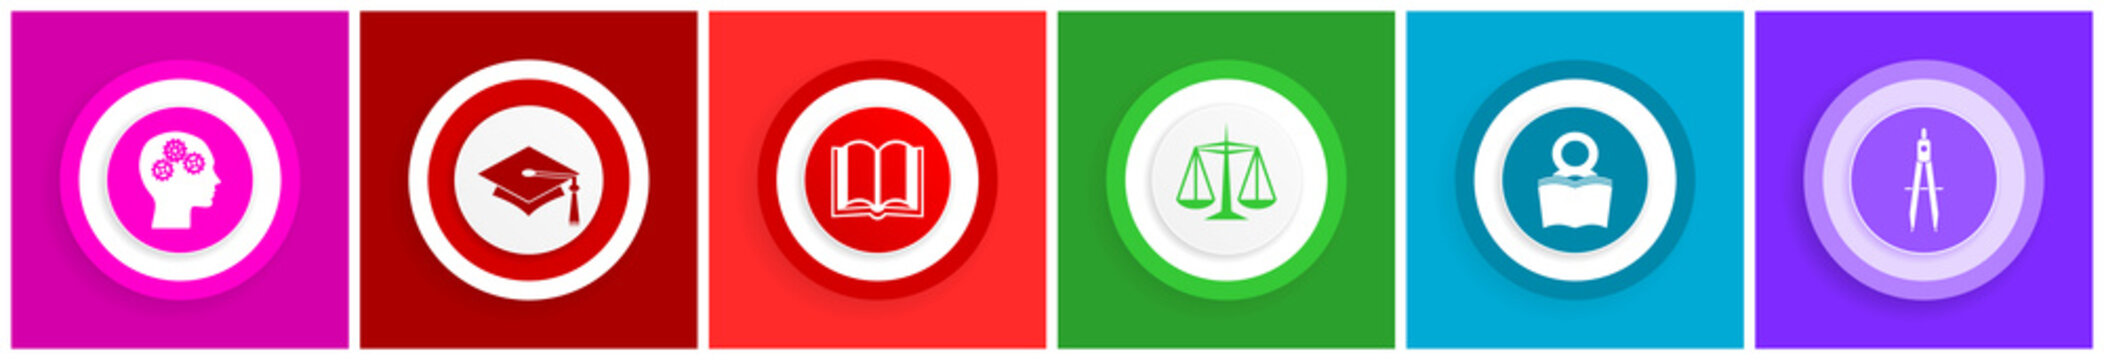 Education flat design colorful vector icons, set of school and science symbols in eps 10